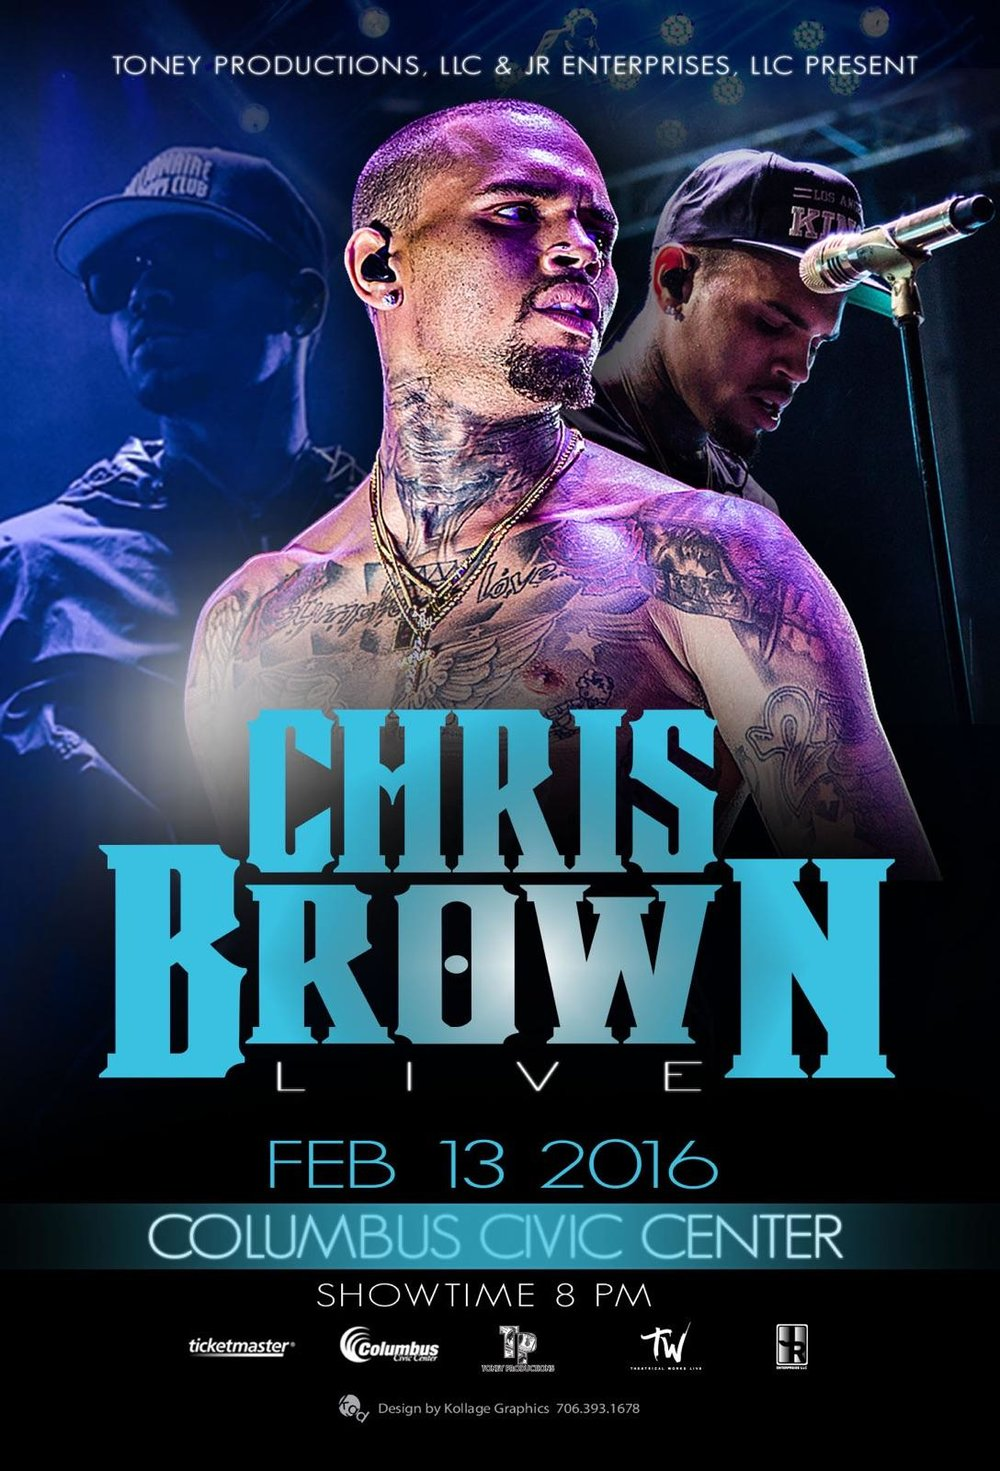 Concert Promotions - JR Sports Enterprises has promoted several concerts and appearances around the country including the 2016 Chris Brown Concert in Columbus, Georgia